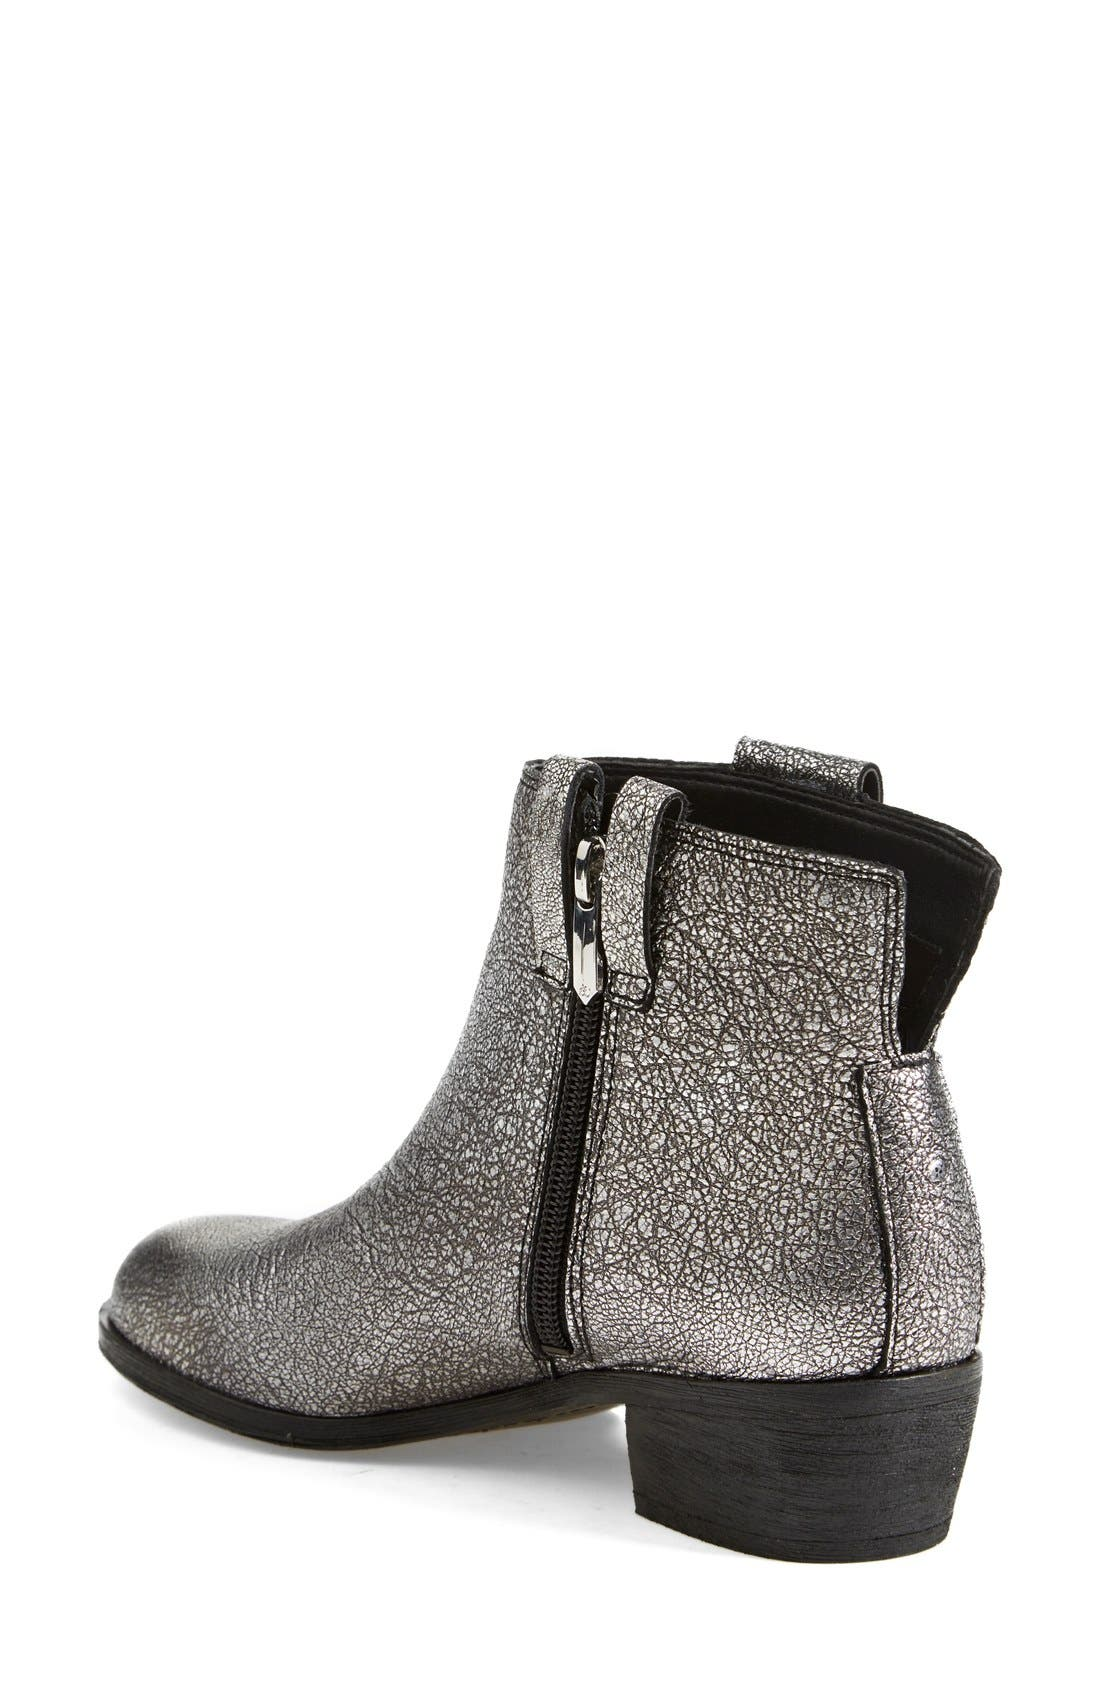 'James' Round Toe Bootie,                             Alternate thumbnail 2, color,                             Argento Silver